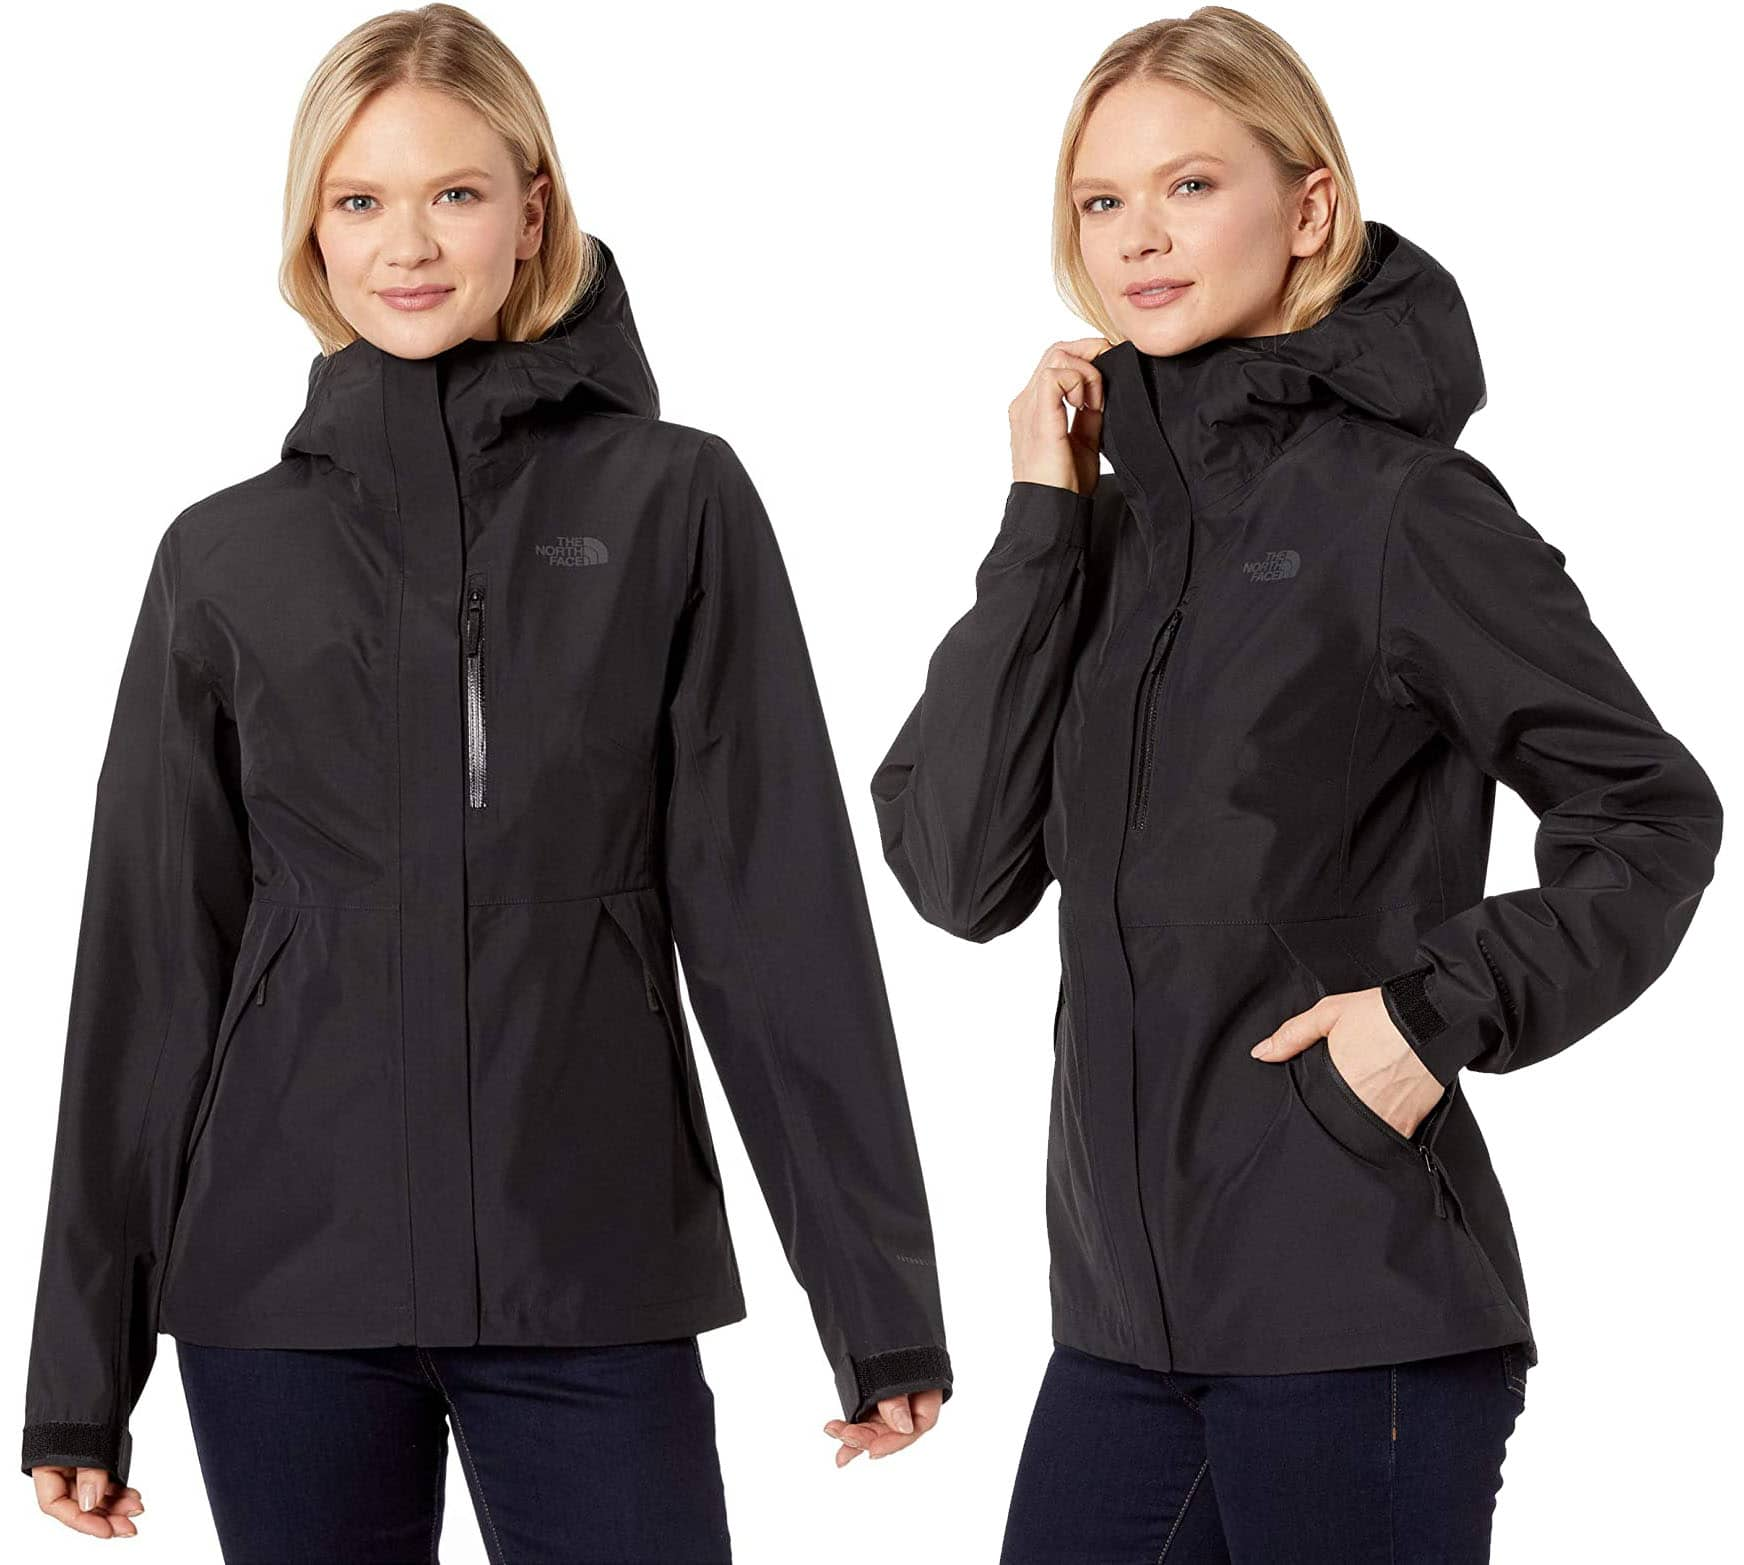 The North Face Dryzzle Futurelight jacket is ideal for active adventures no matter the weather